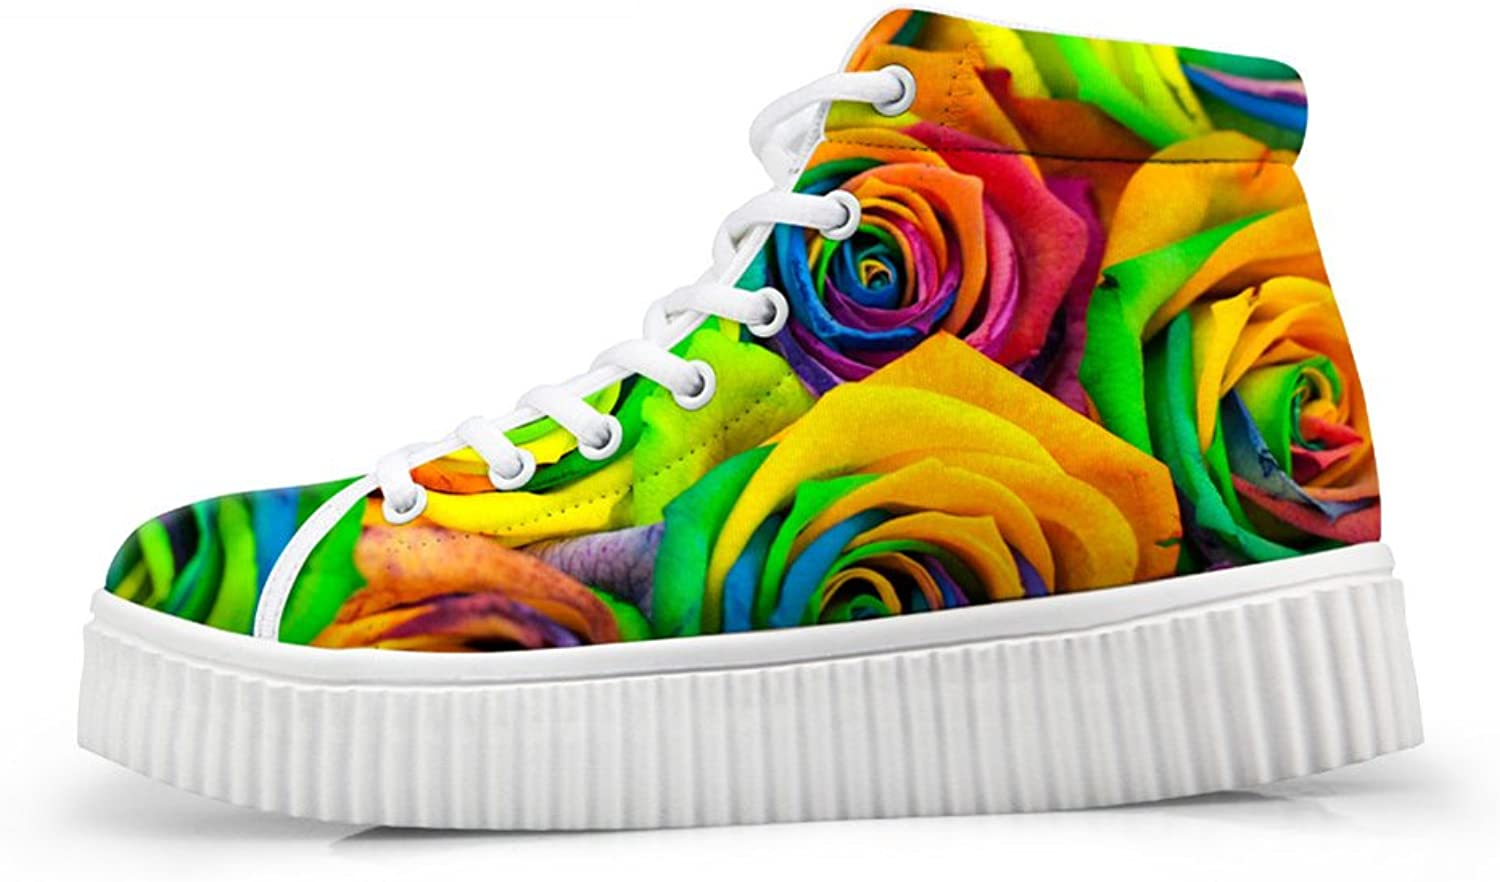 Mumeson Fashion Floral Women Platform Sneakers High Tops Athletic Walking shoes